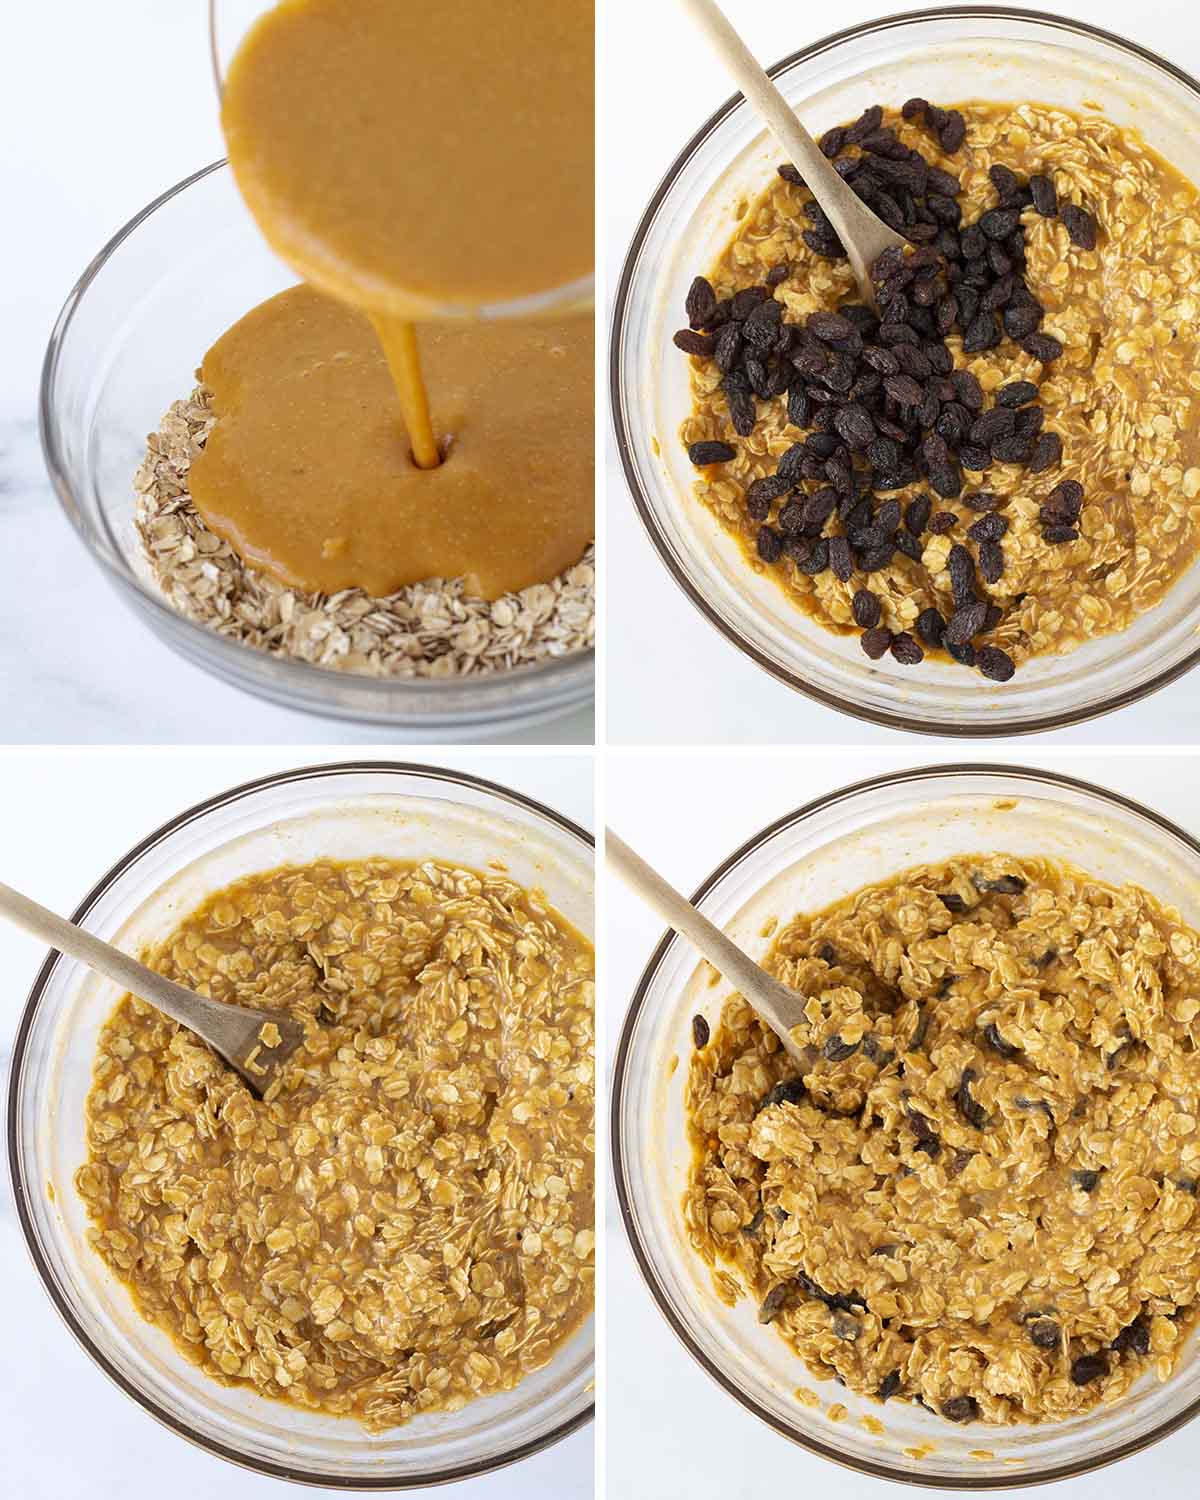 A collage of four images showing the sequence of steps needed to make eggless pumpkin baked oatmeal.